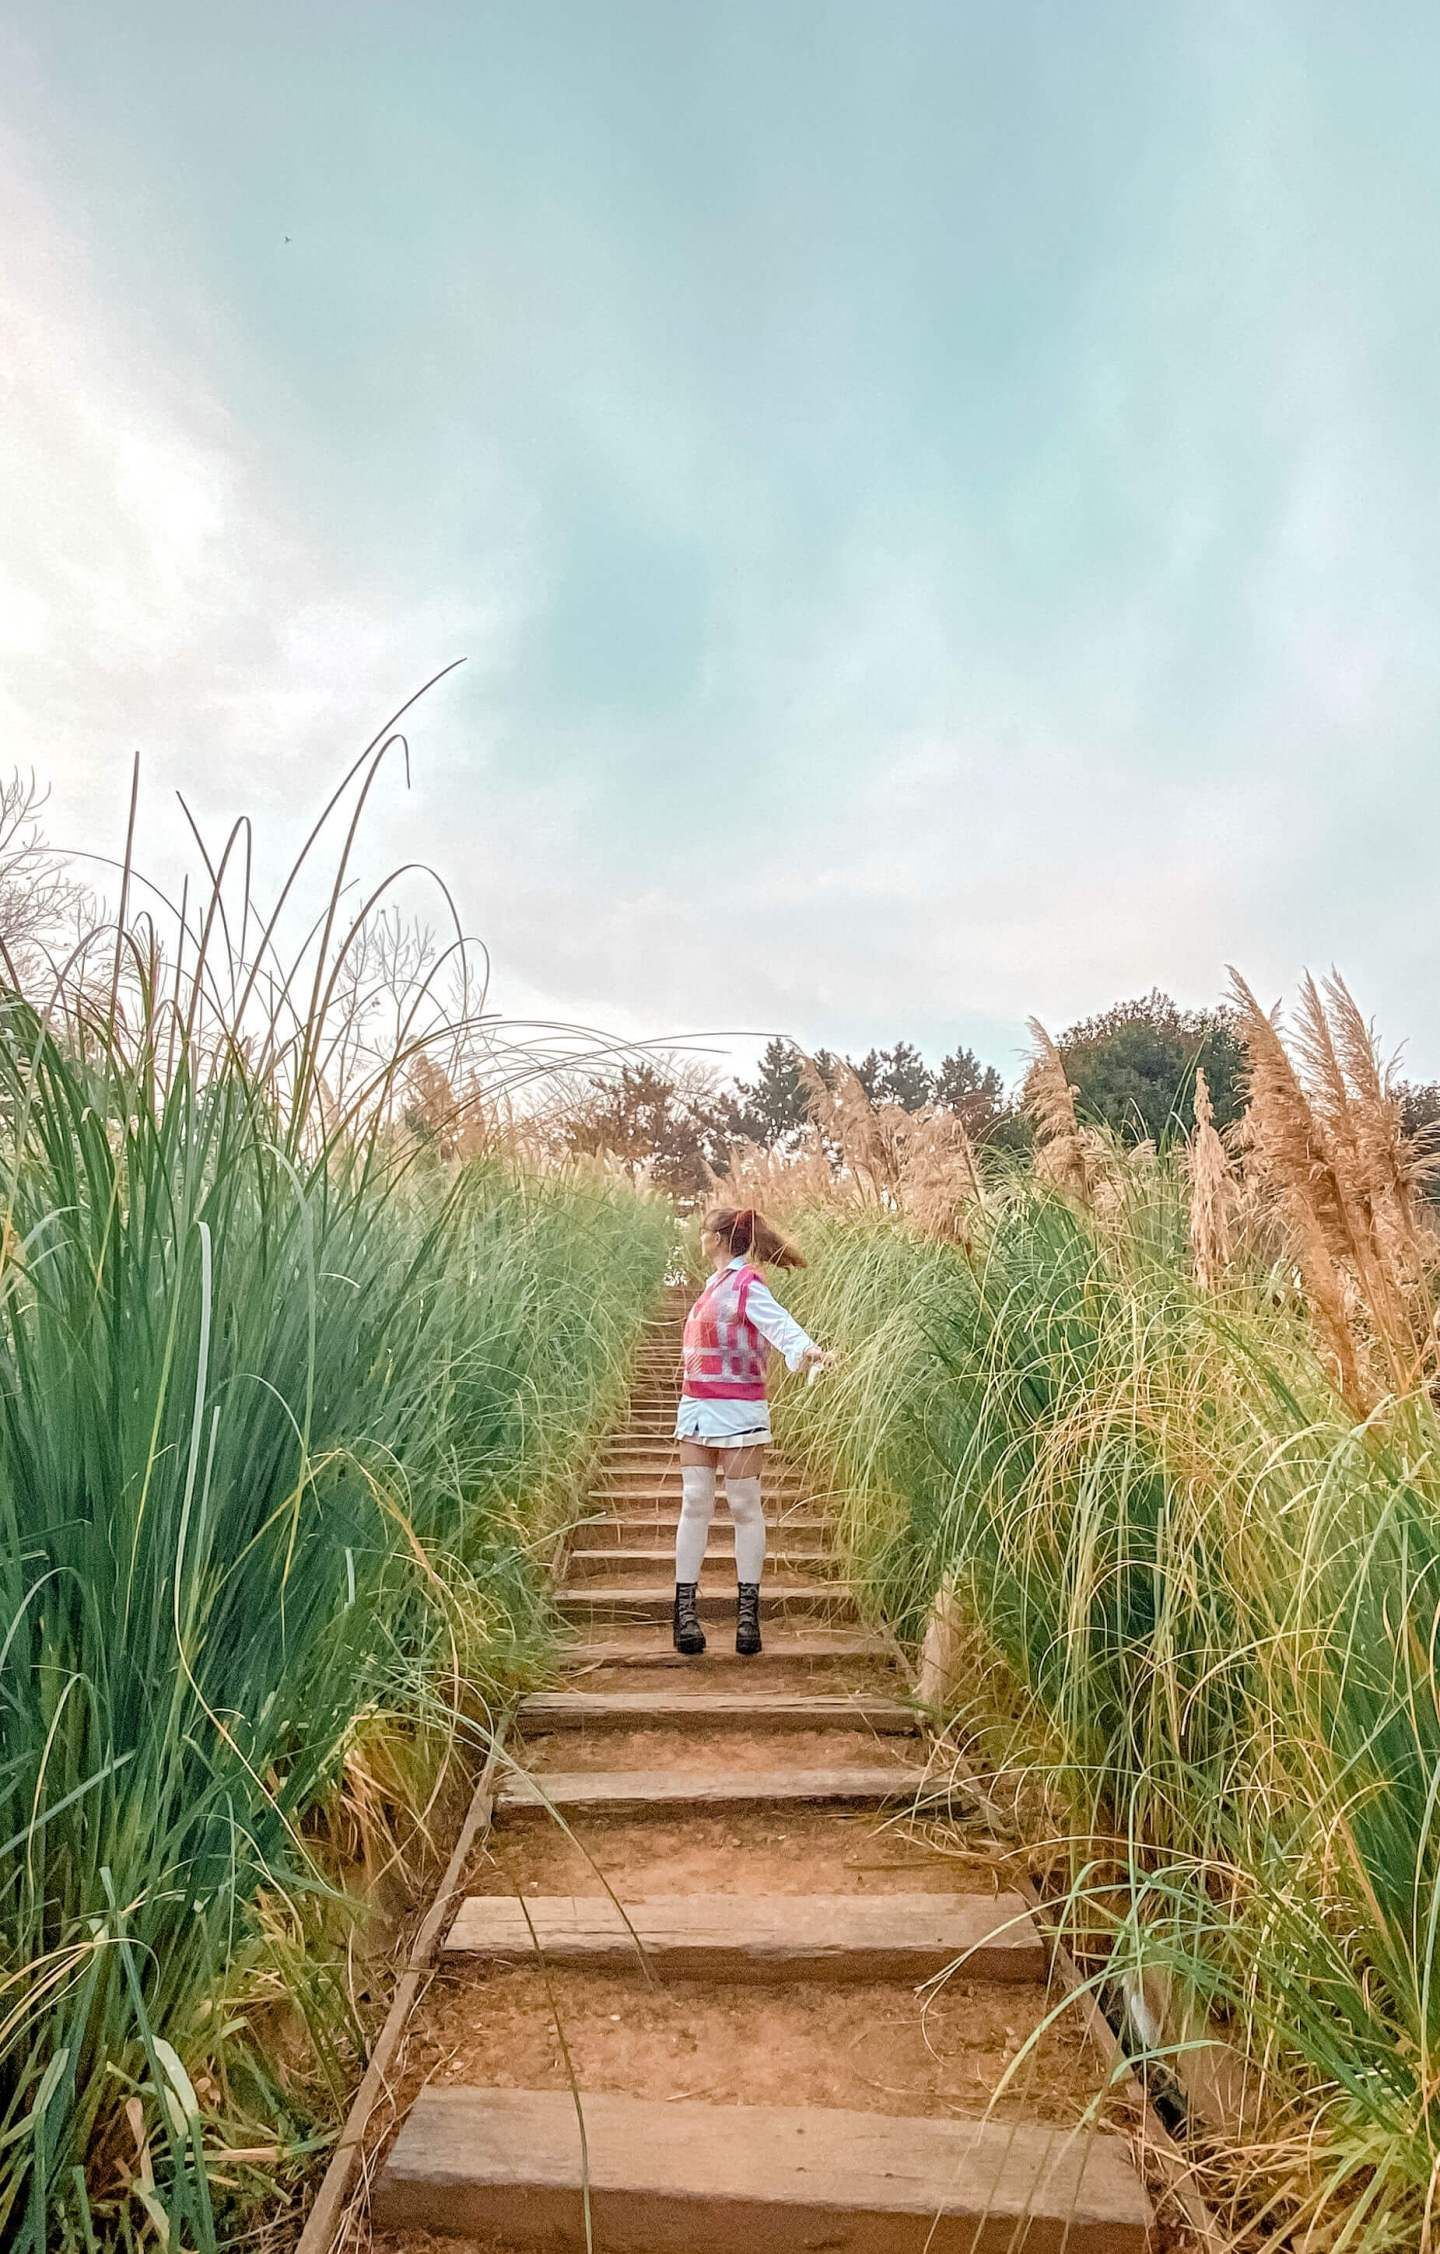 fii standing in a central path among tall pampas grass at farm kamille